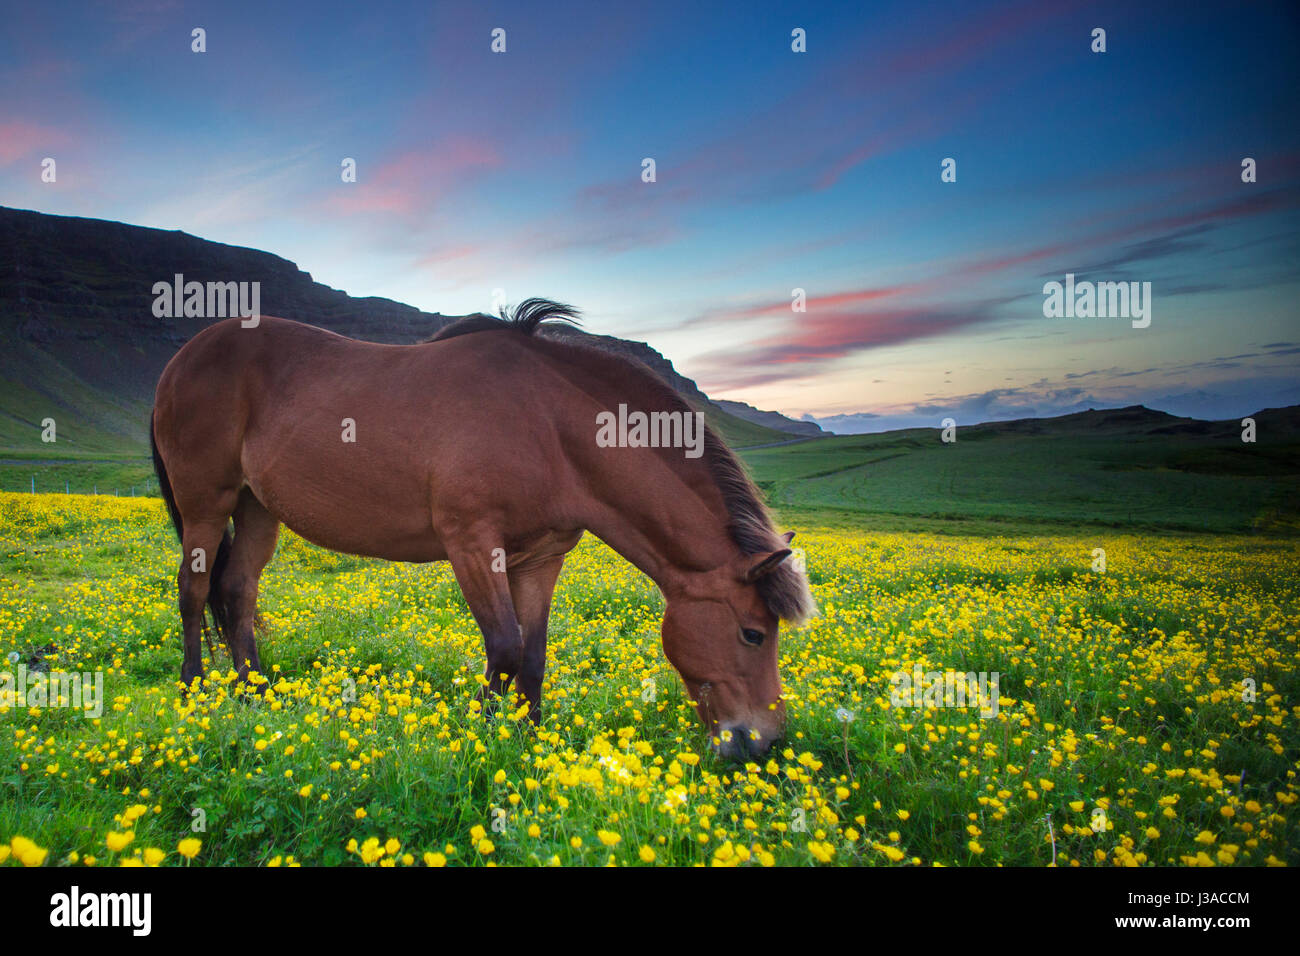 Icelandic horse grazing in a field of flowers Stock Photo